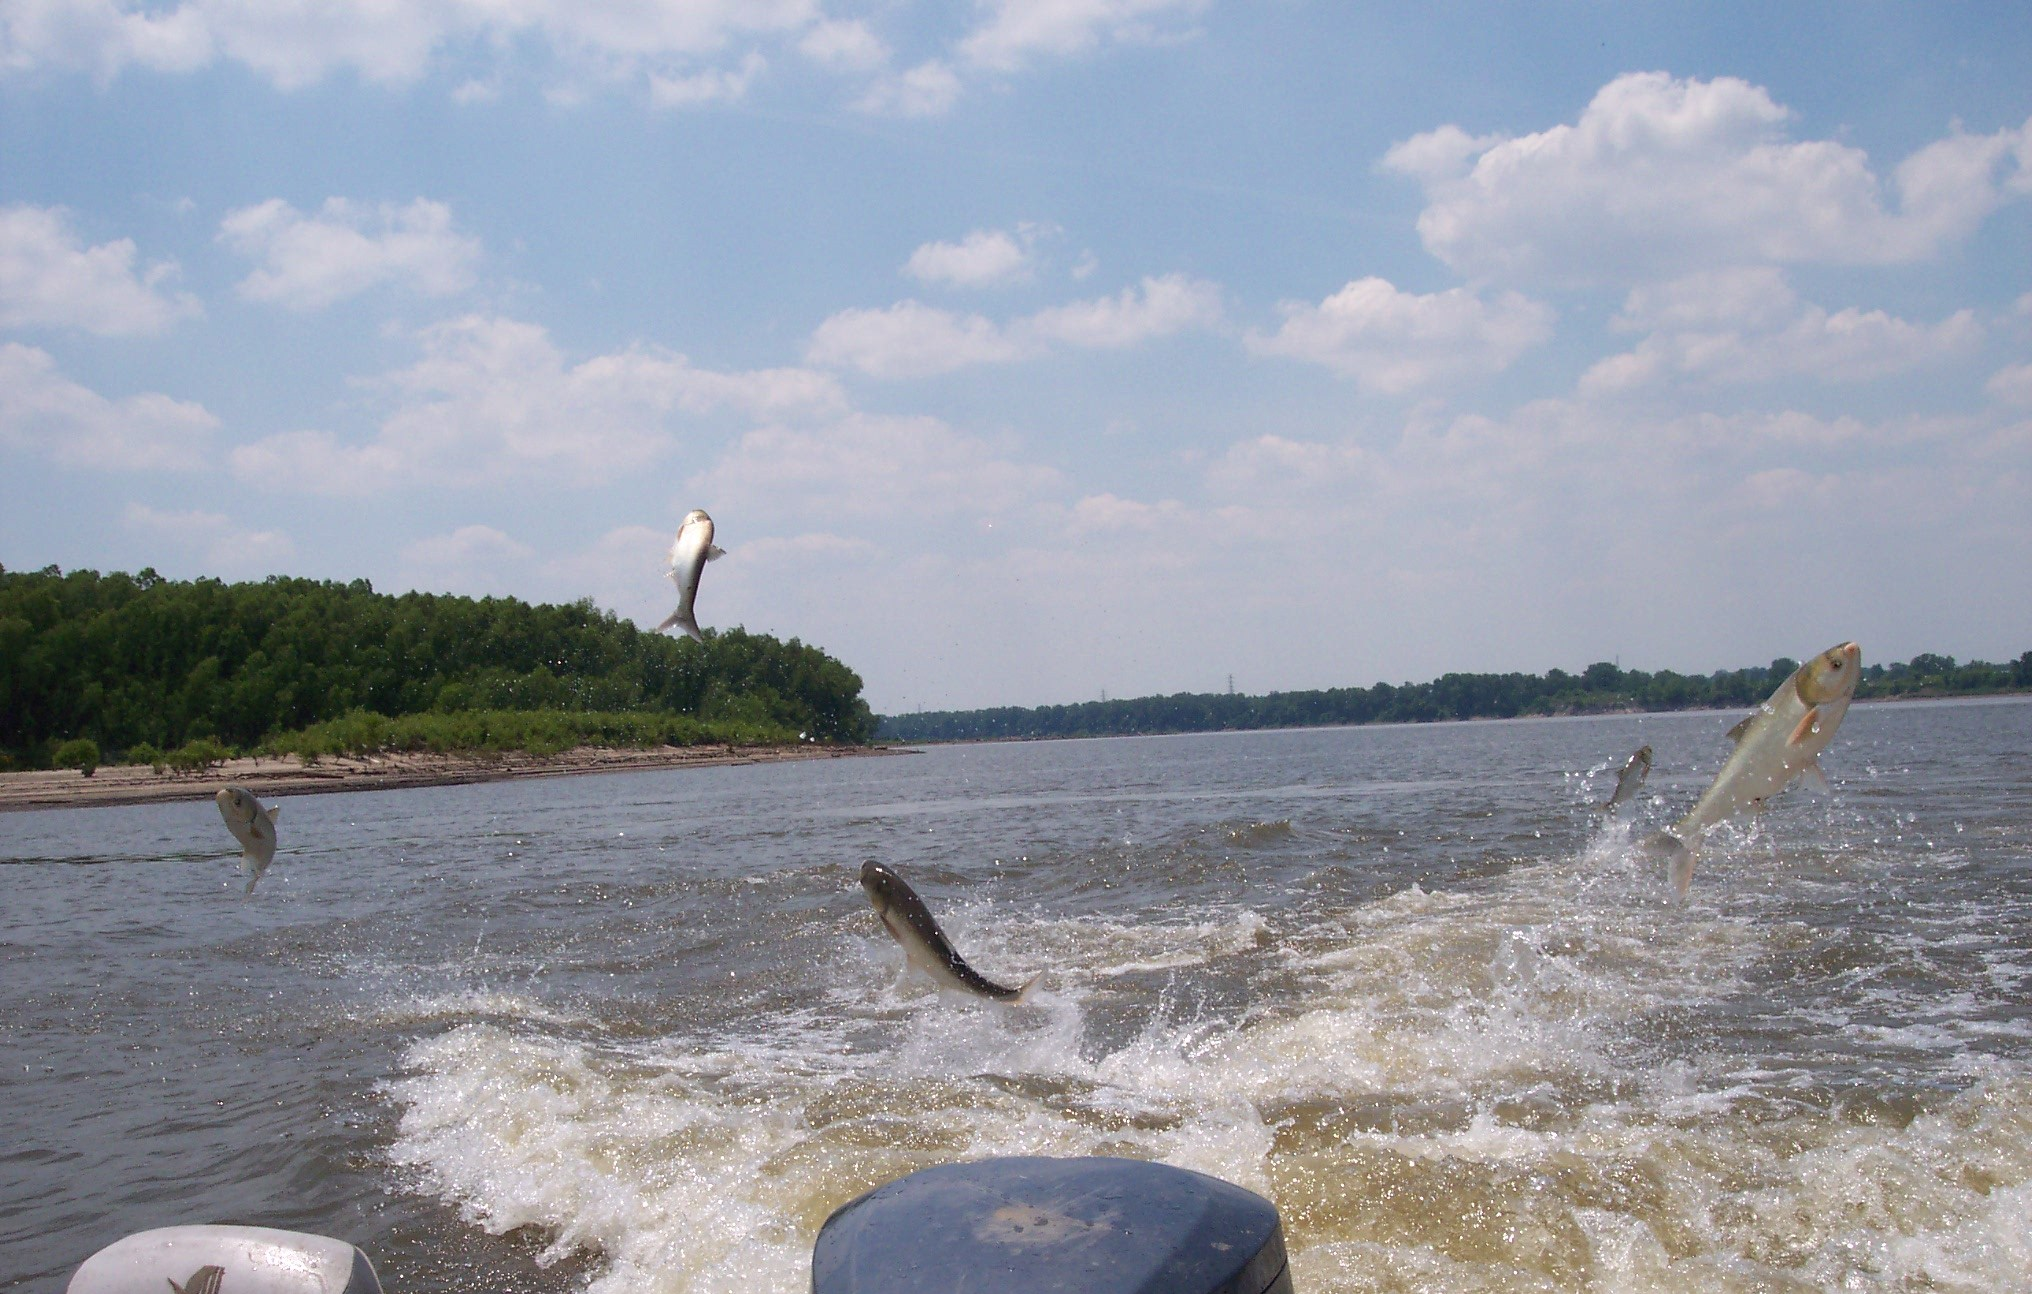 Asian carp jumping from the Mississippi River near Cape Girardeau, Missouri. Image credit: Sara Tripp, Missouri Department of Conservation